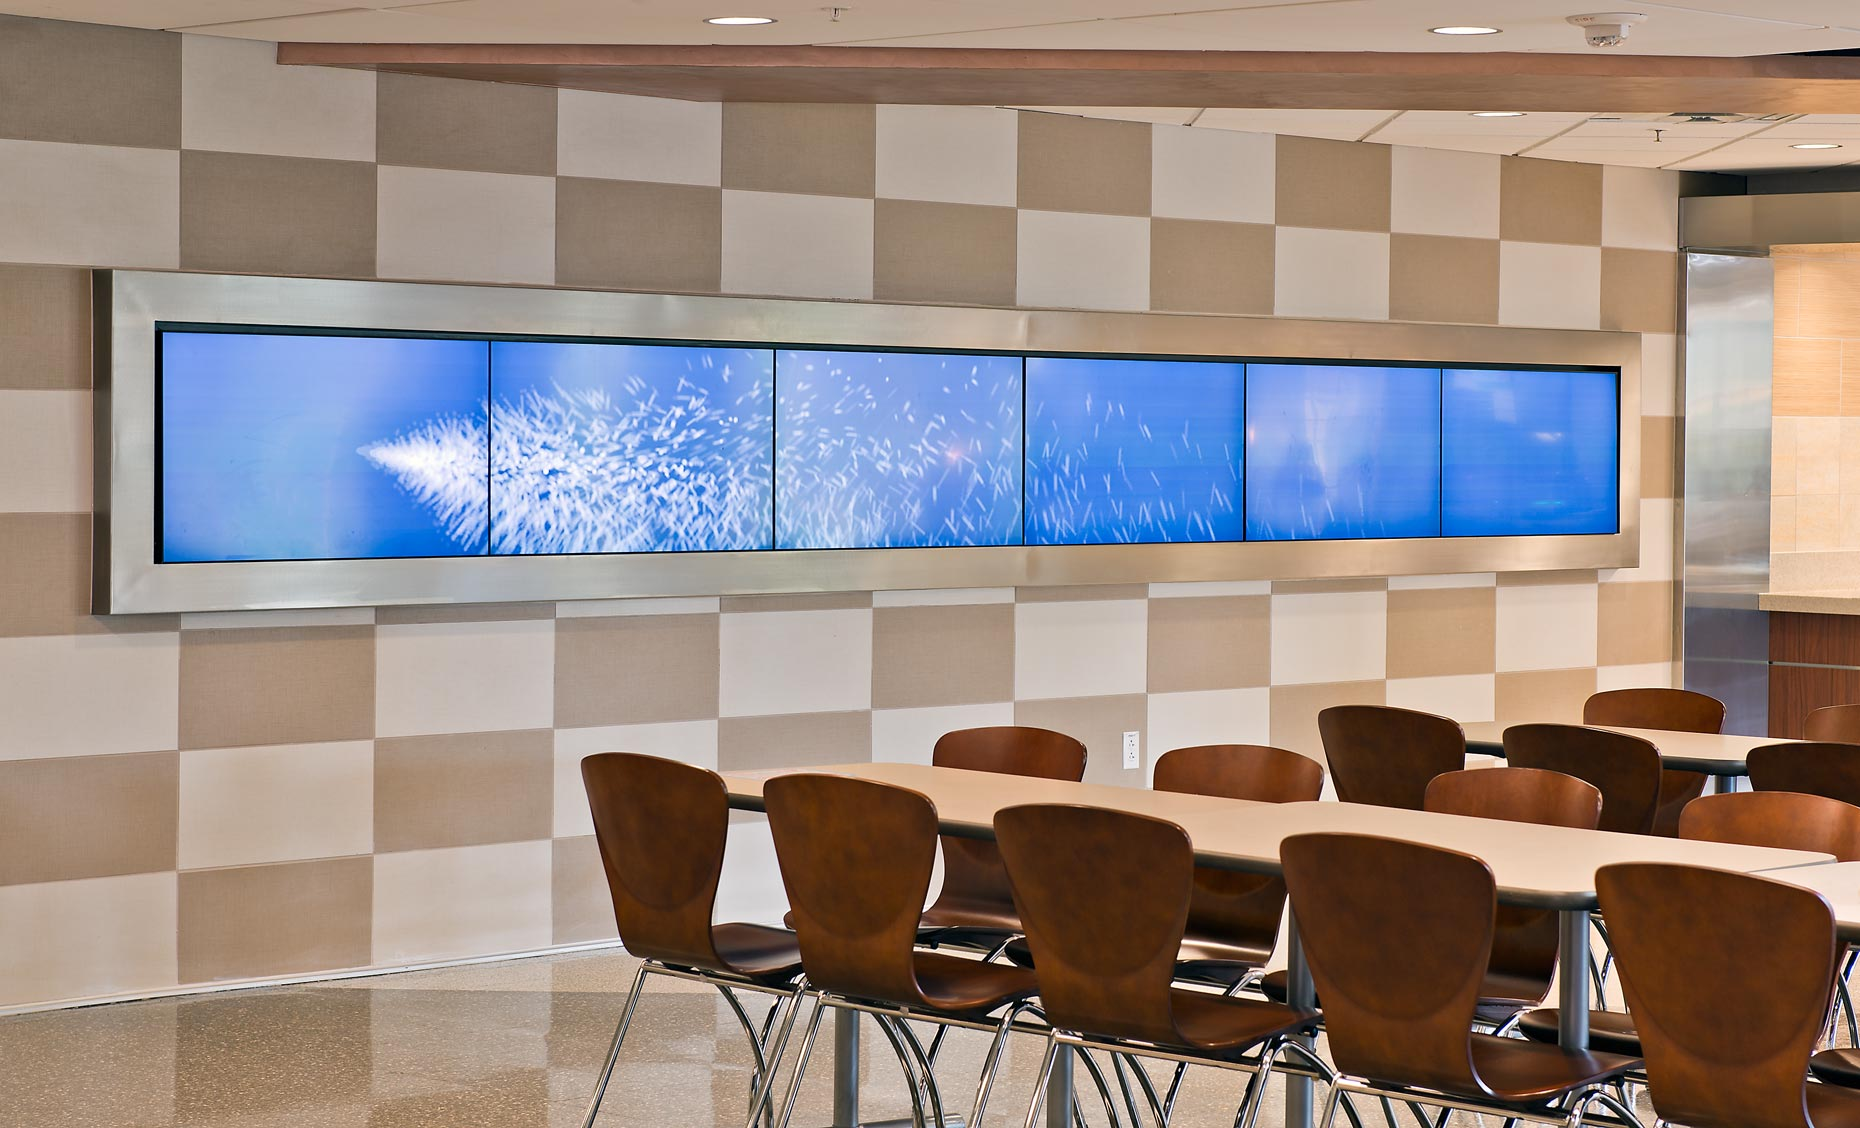 washingtondccommercialarchitecturecoledenny_universityofvirginia_photographs_12